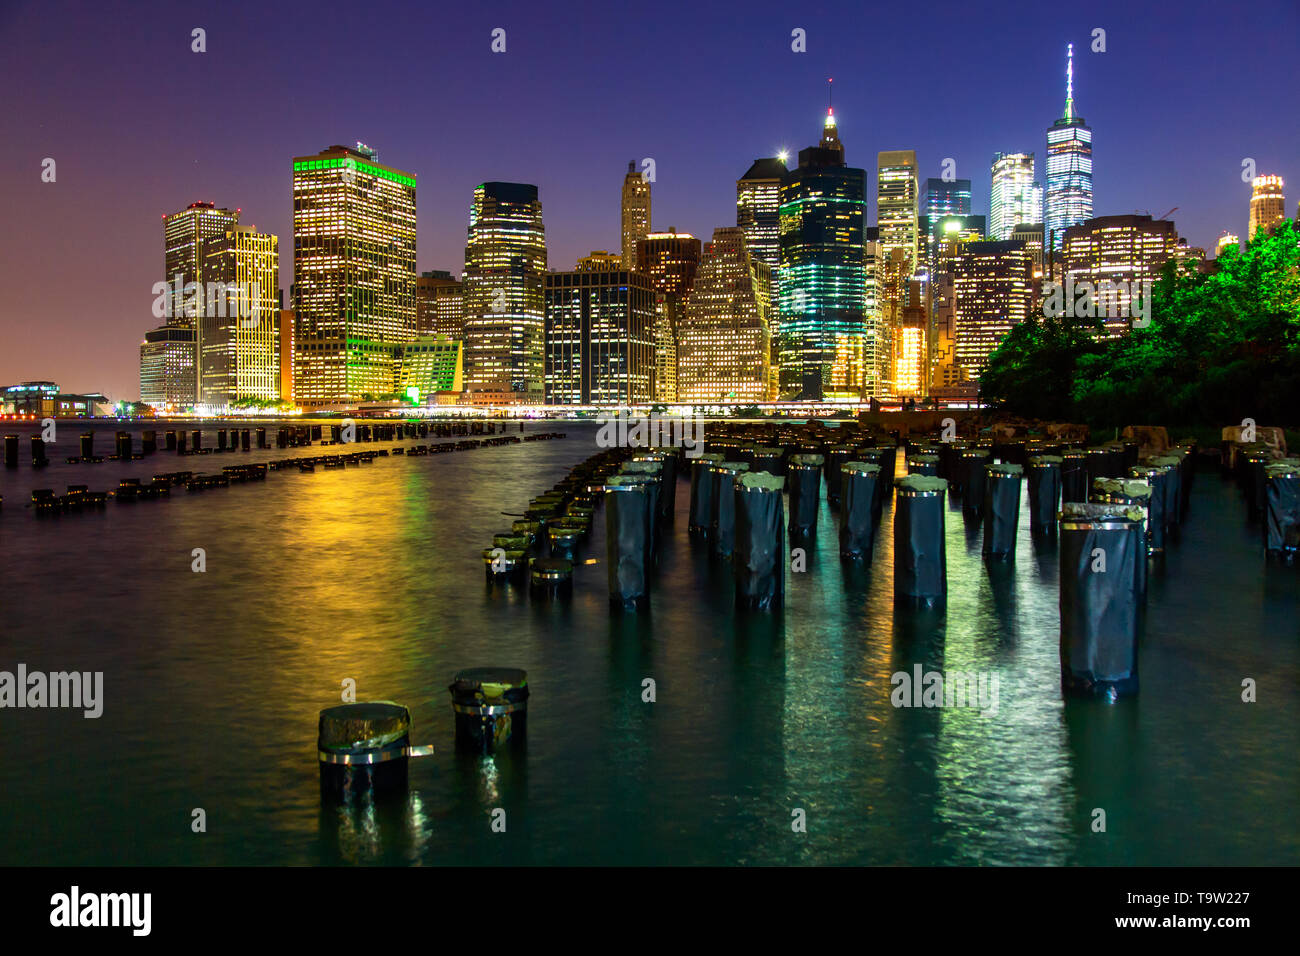 Manhattan at dusk viewed from the Brooklyn Bridge Park in New York City - Stock Image